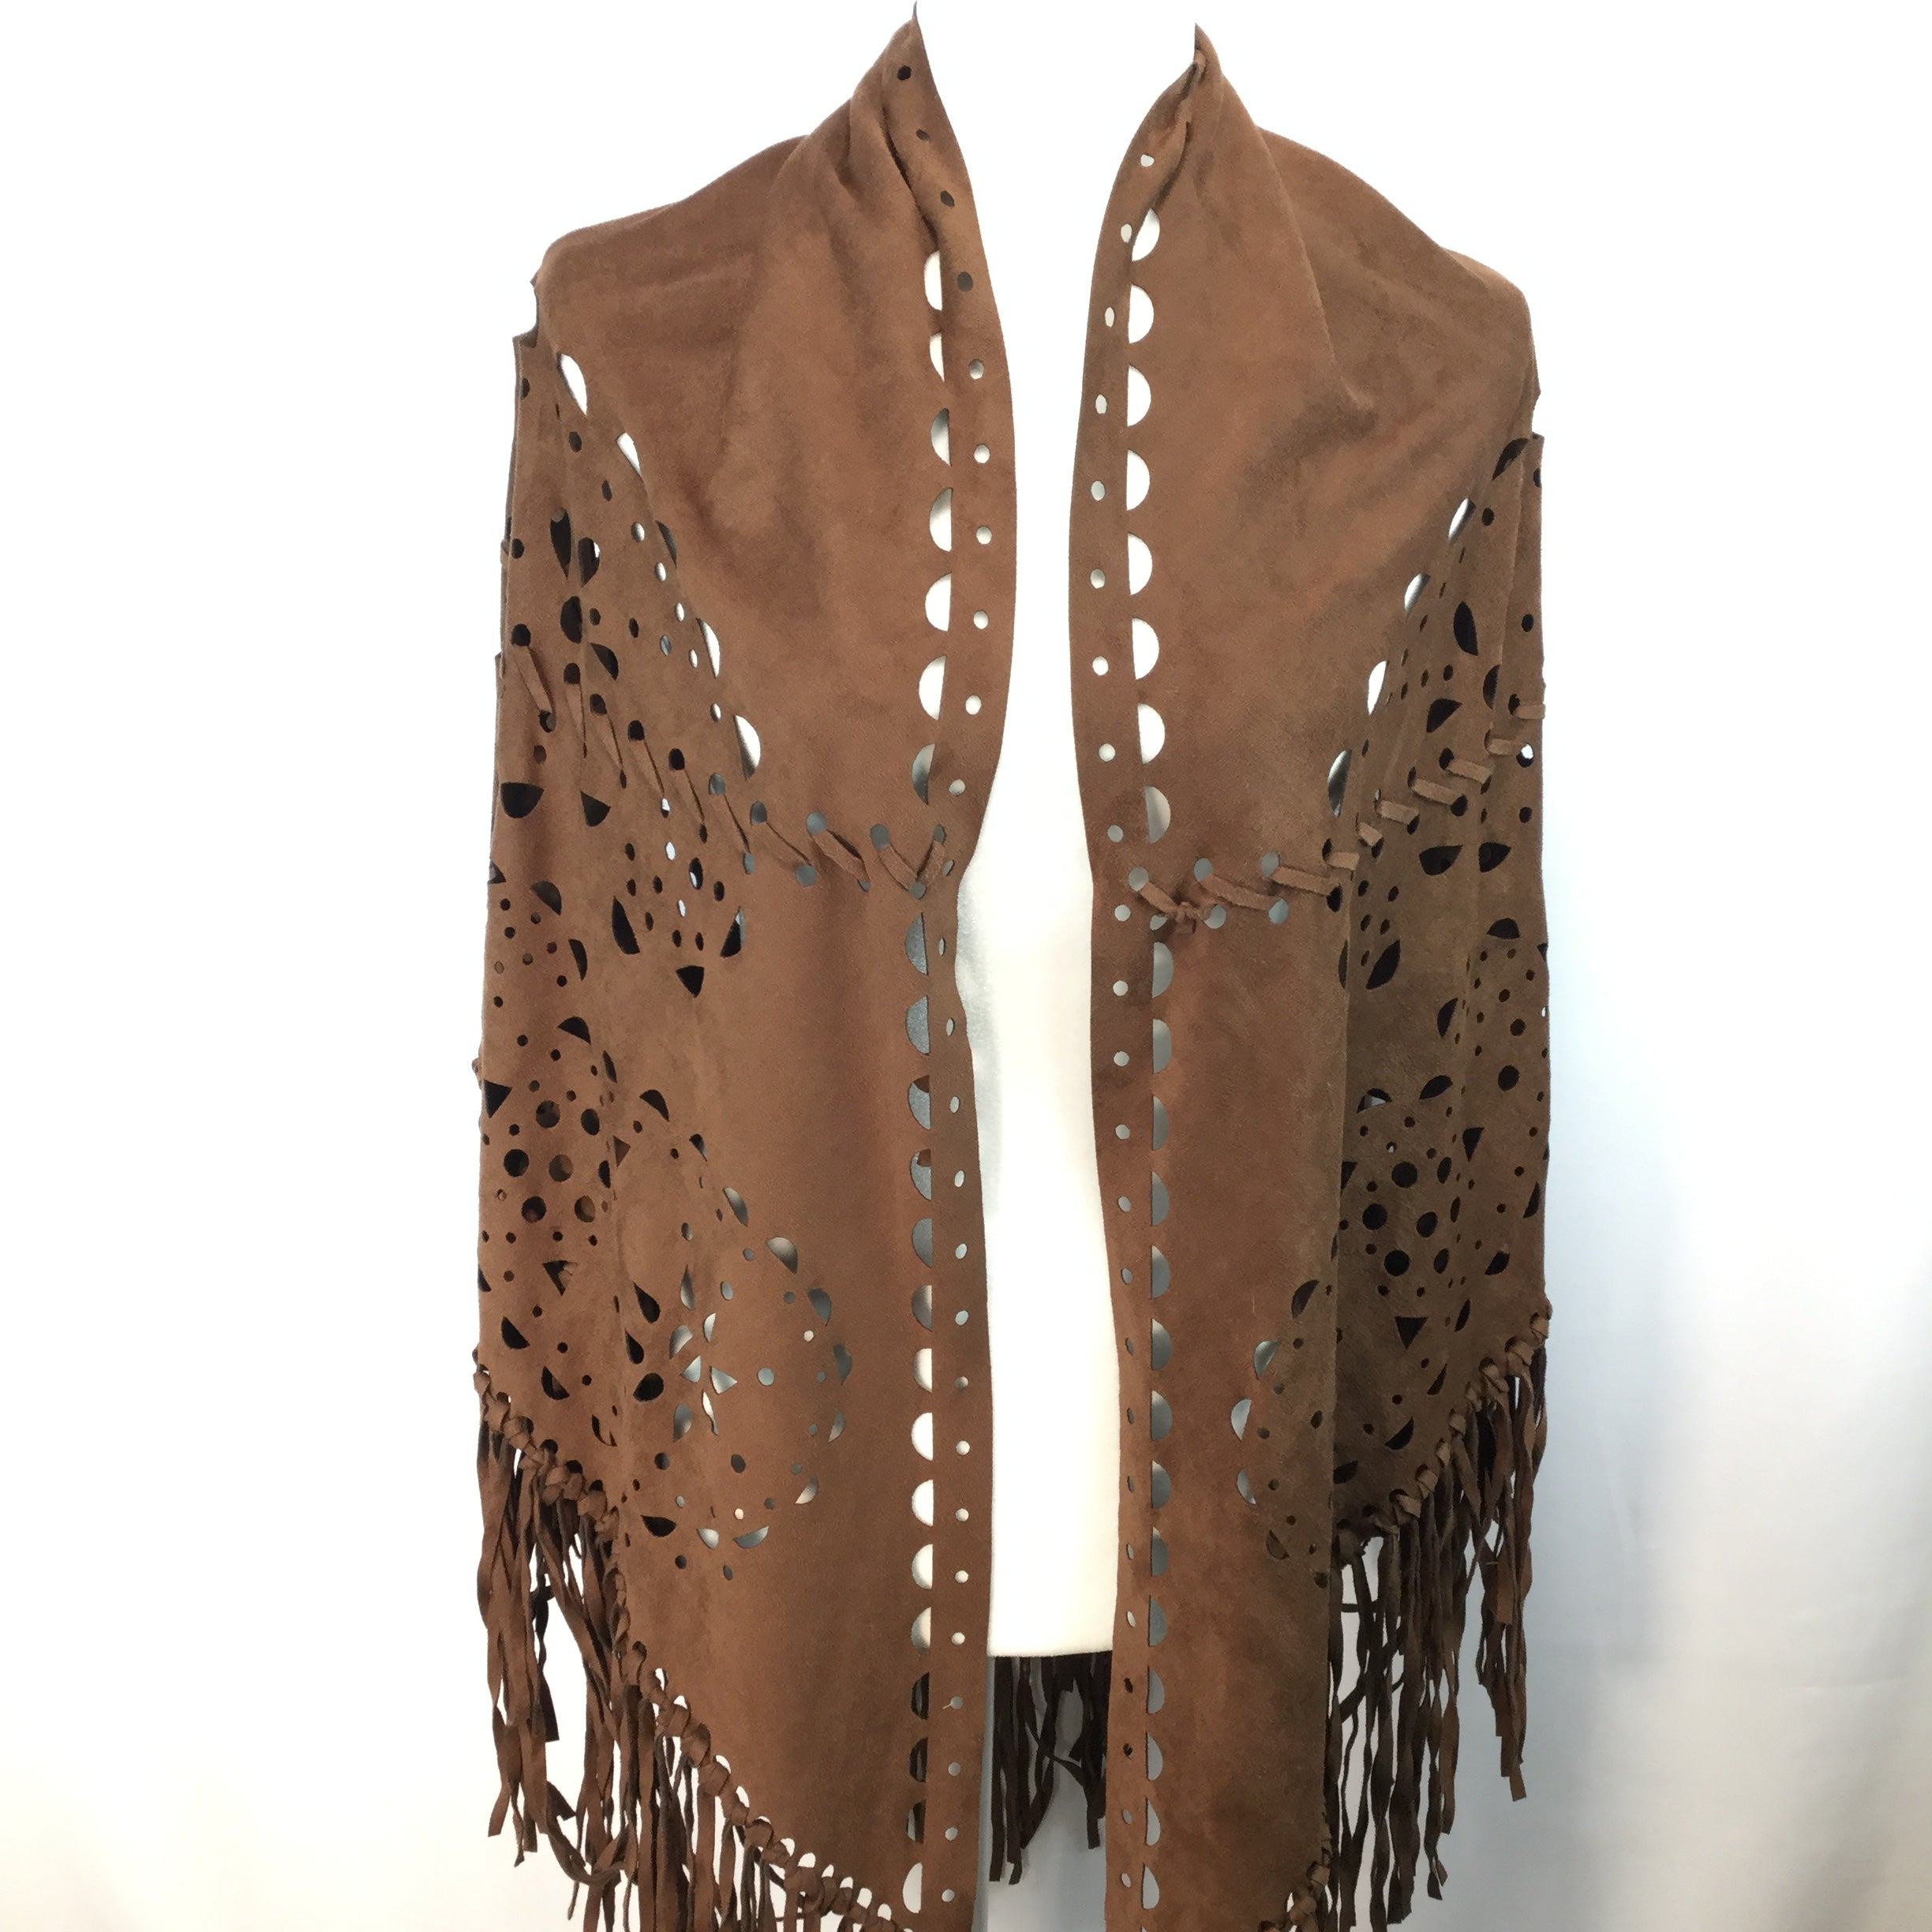 APPAREL,OTHER APPAREL - LOOKING FOR THE PERFECT SHAWL? WE HAVE YOU COVERED! THIS LIGHTWEIGHT SHAWL HAS LOTS TO LOVE FROM TASSELS, TO CUT OUTS, AND GREAT MATERIAL.